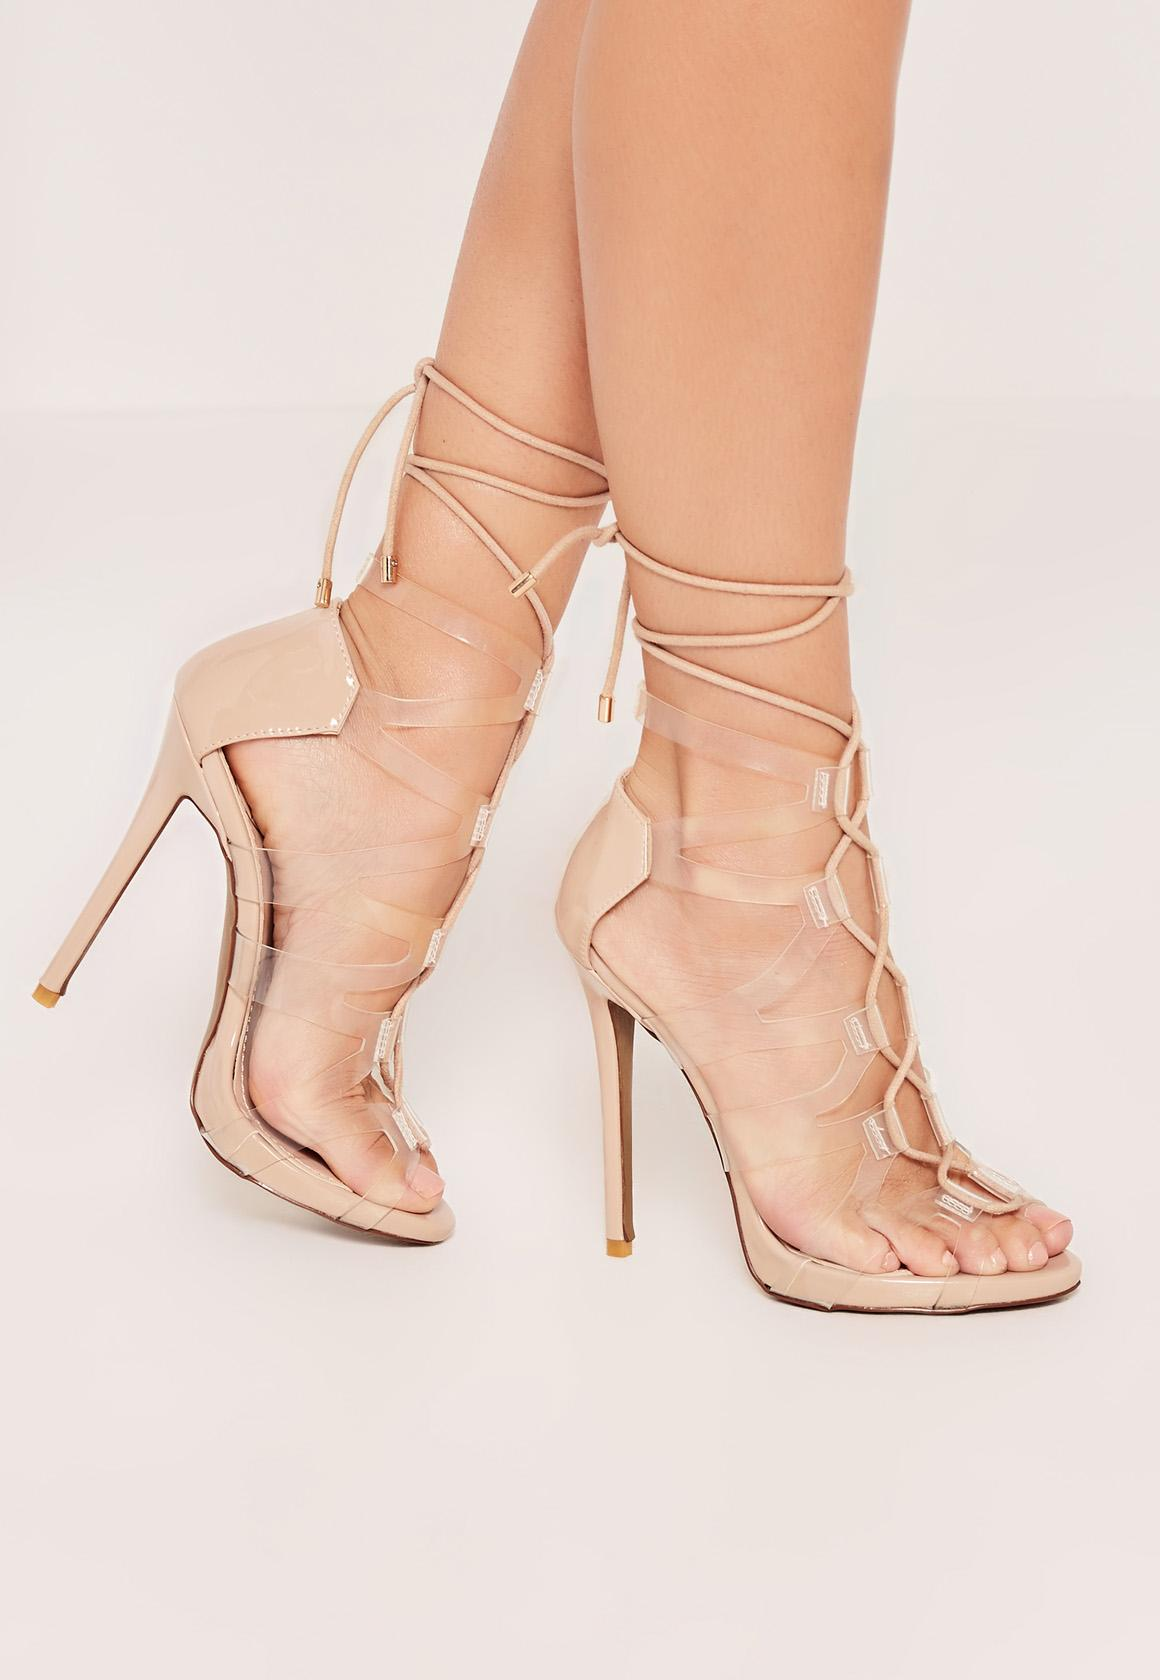 Nude Lace Up Cross Strap Transparent Gladiator Heels | Missguided